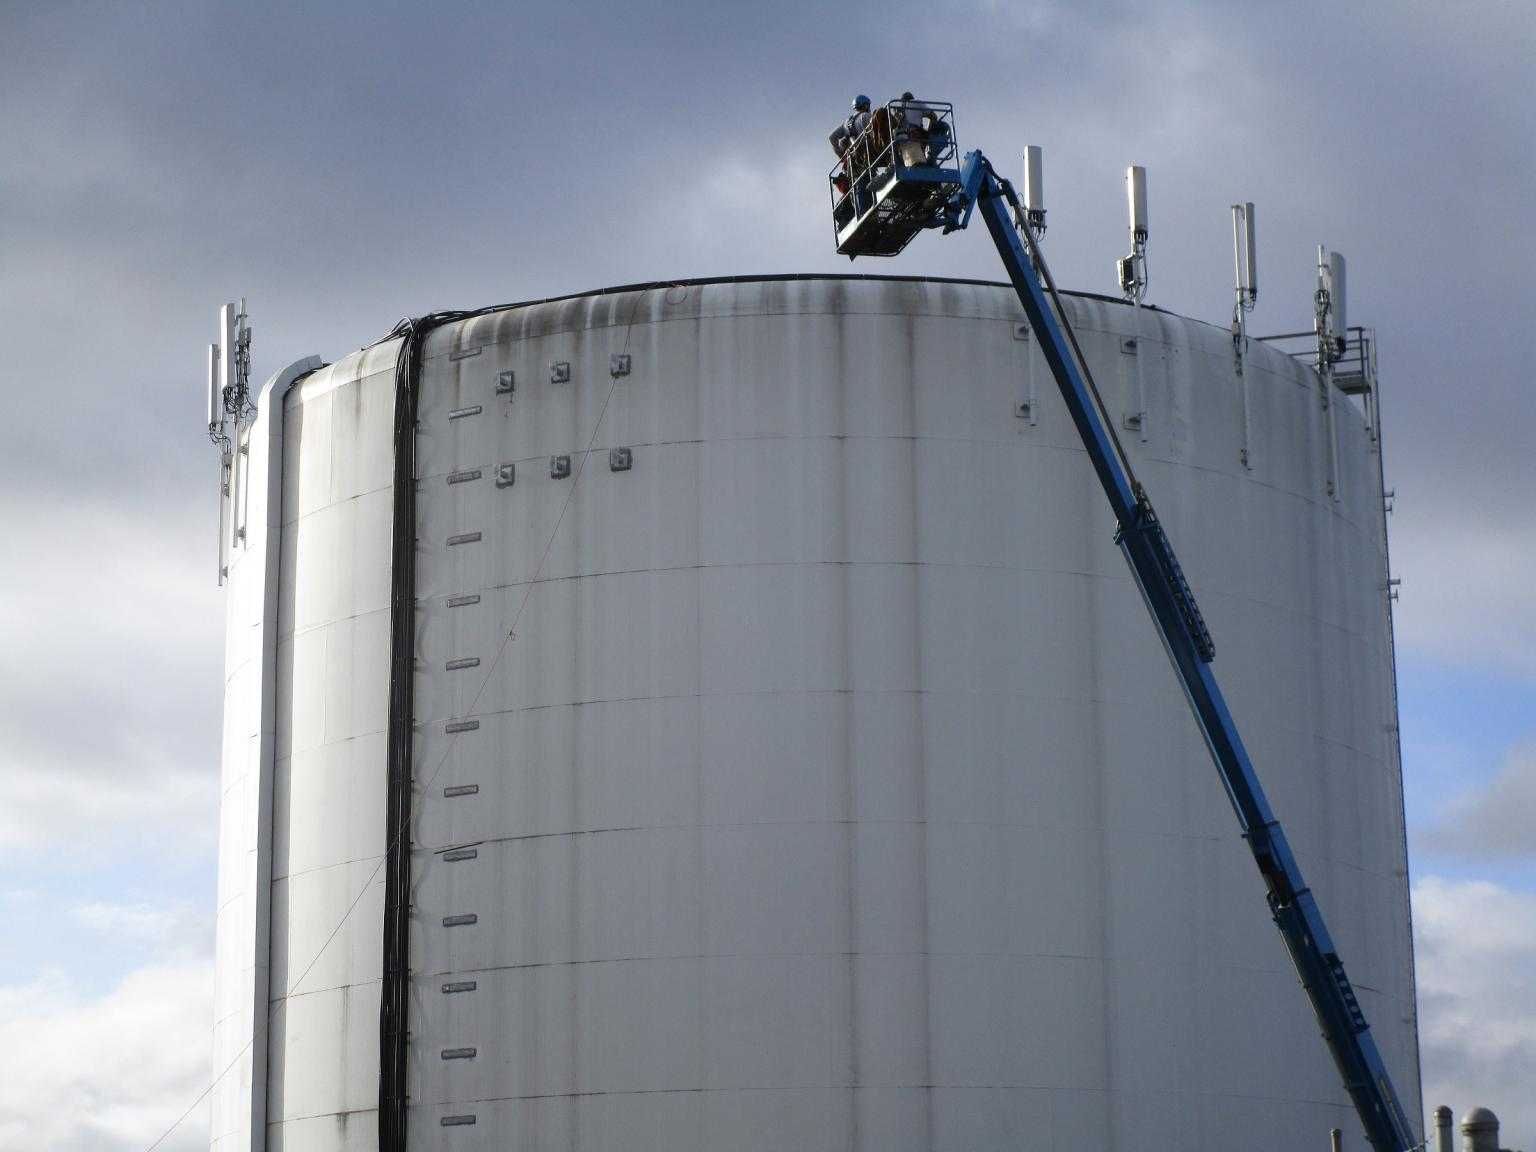 Expansion is eased by using tanks in the wastewater industry